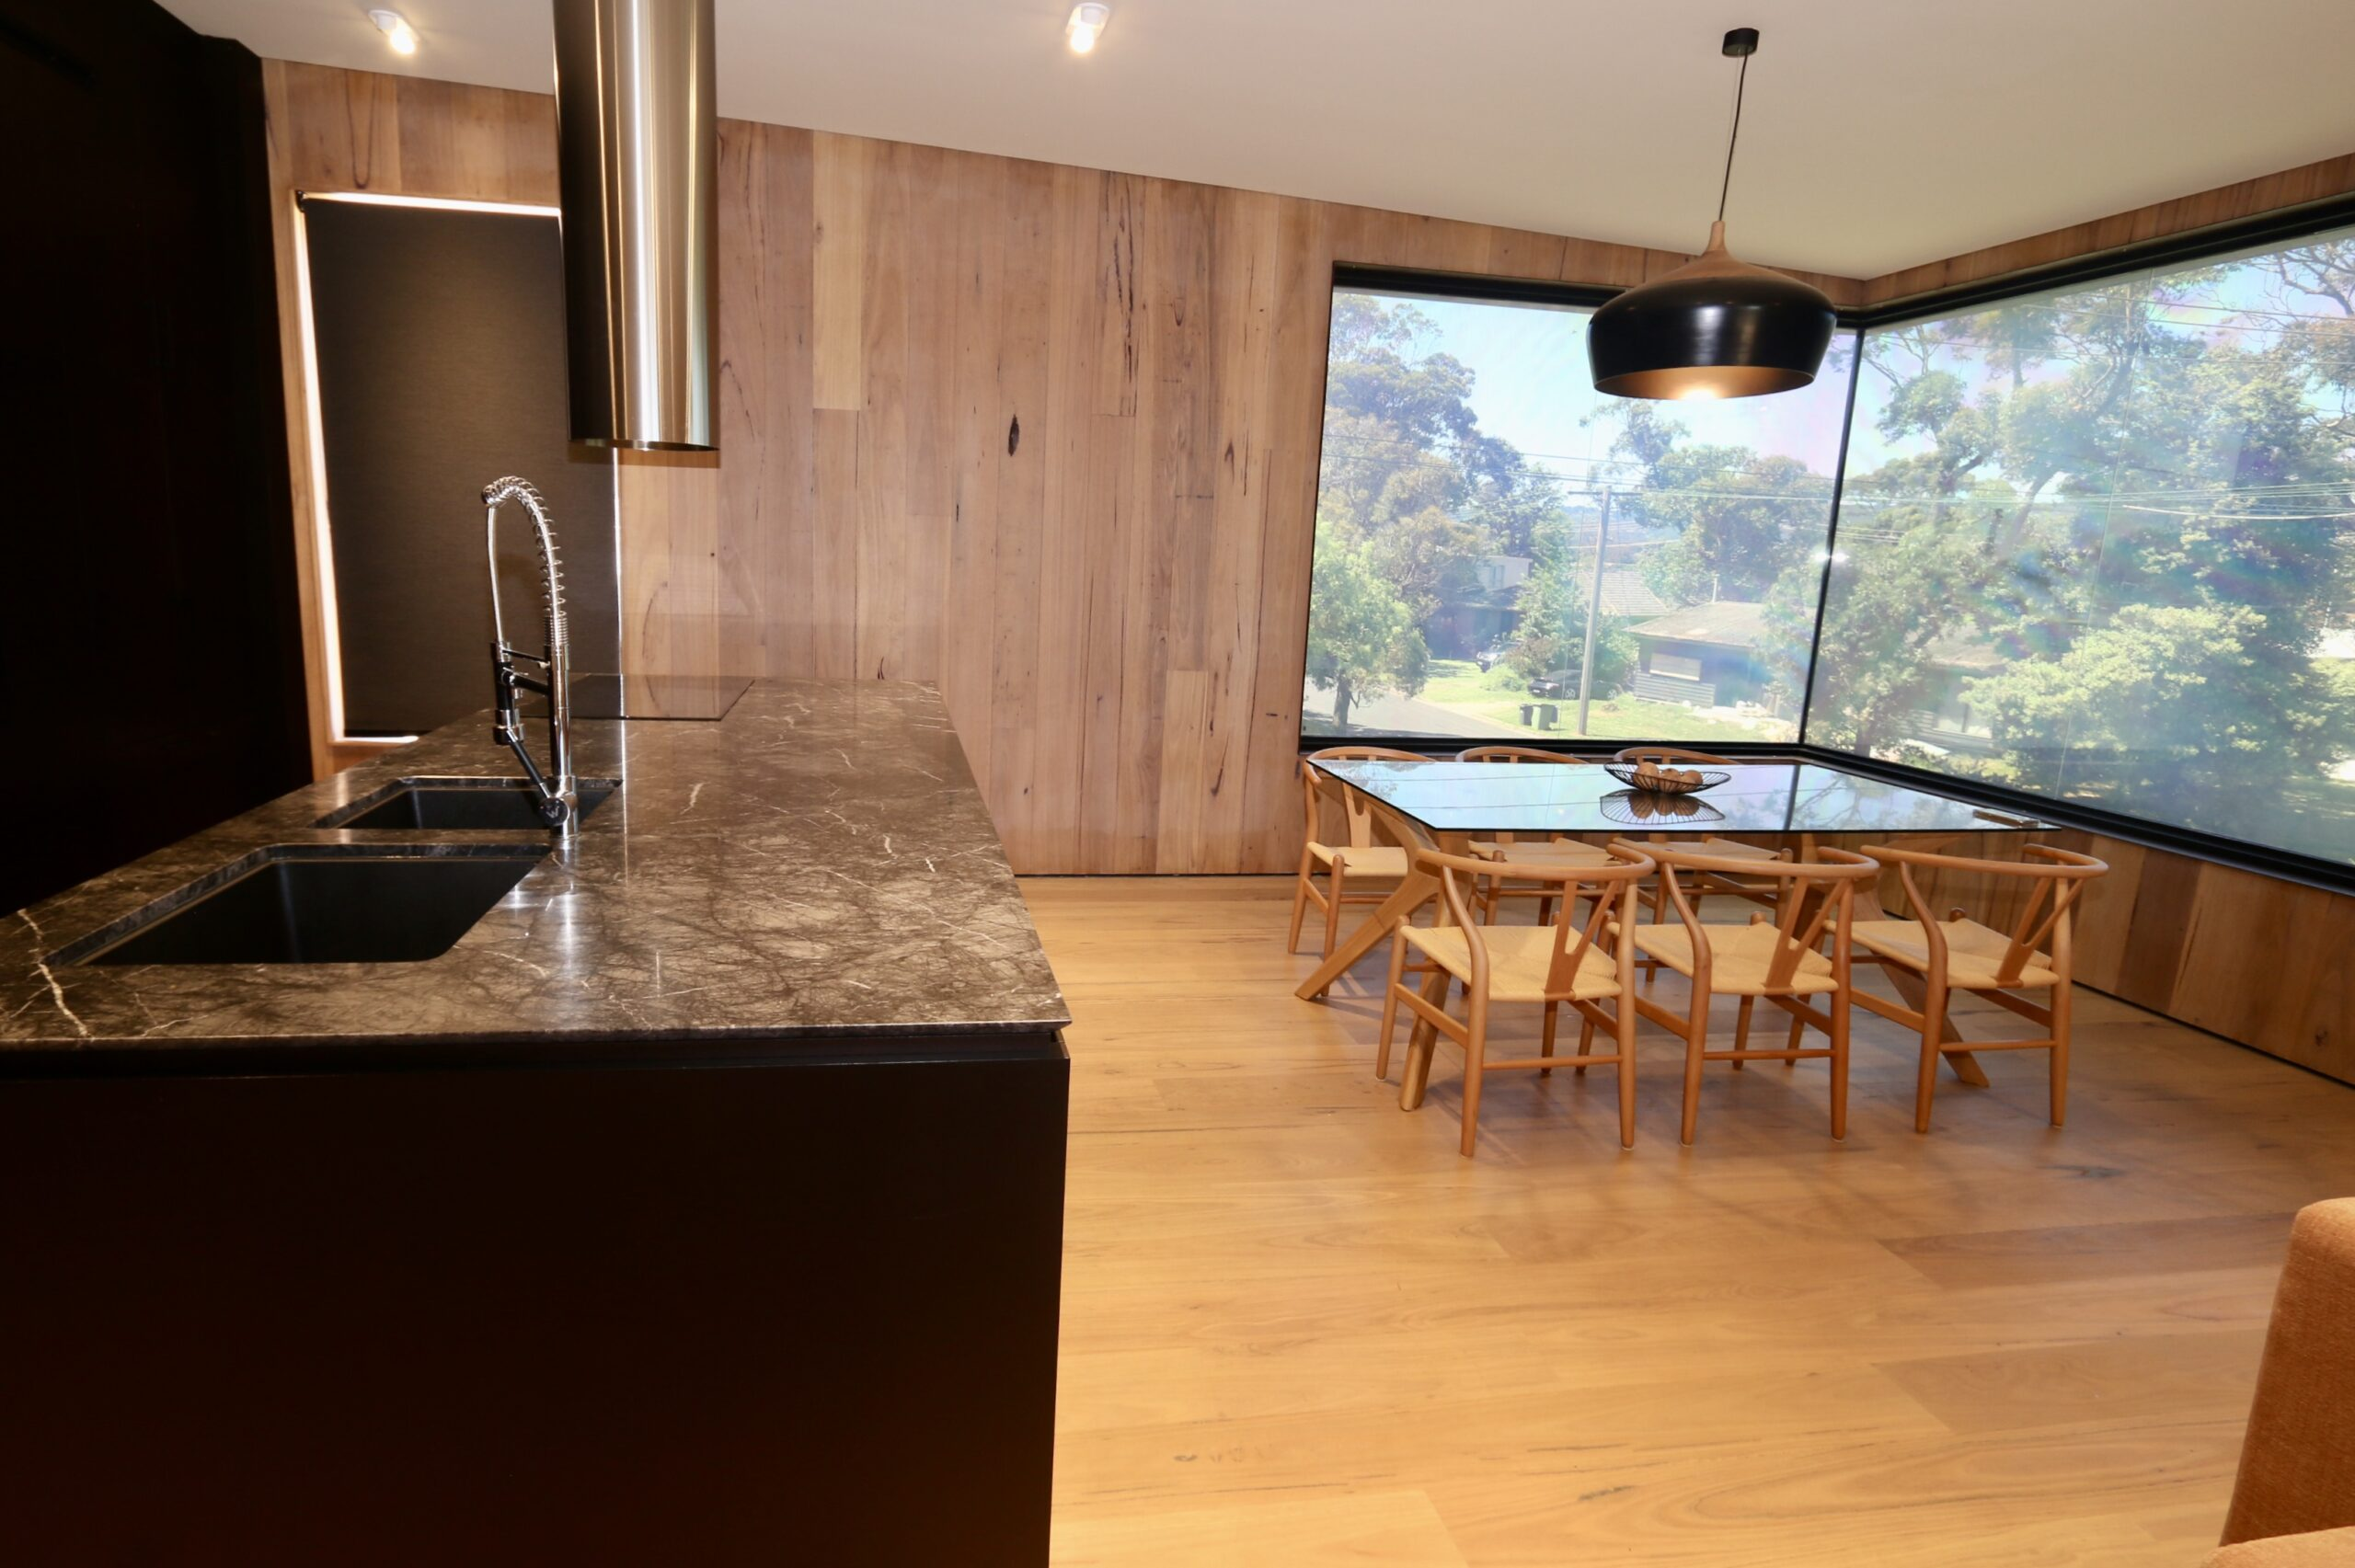 Safety beach holiday rental, kitchen and dining zone. Prescott perfection